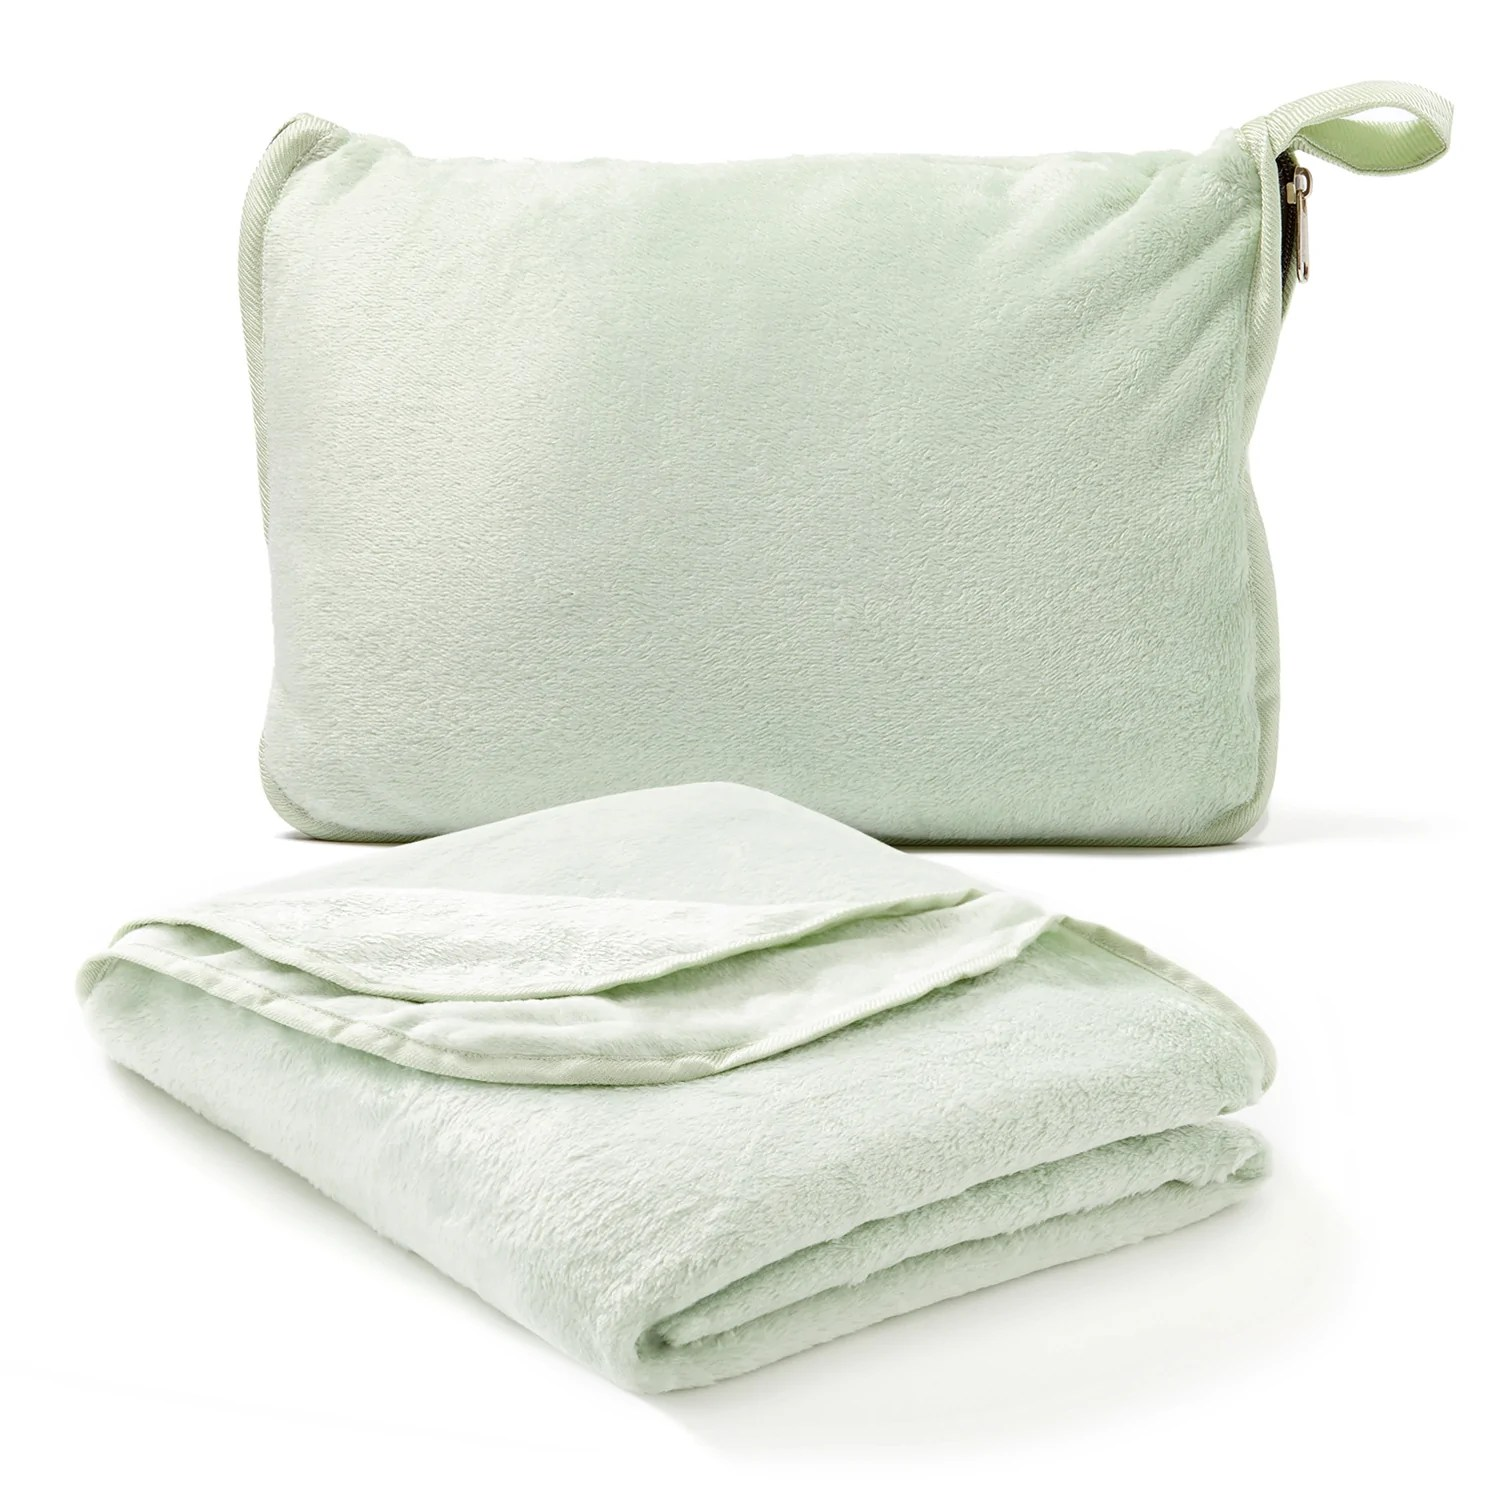 travel blanket and pillow set 2 in 1 soft plush airplane blanket with hand luggage strap